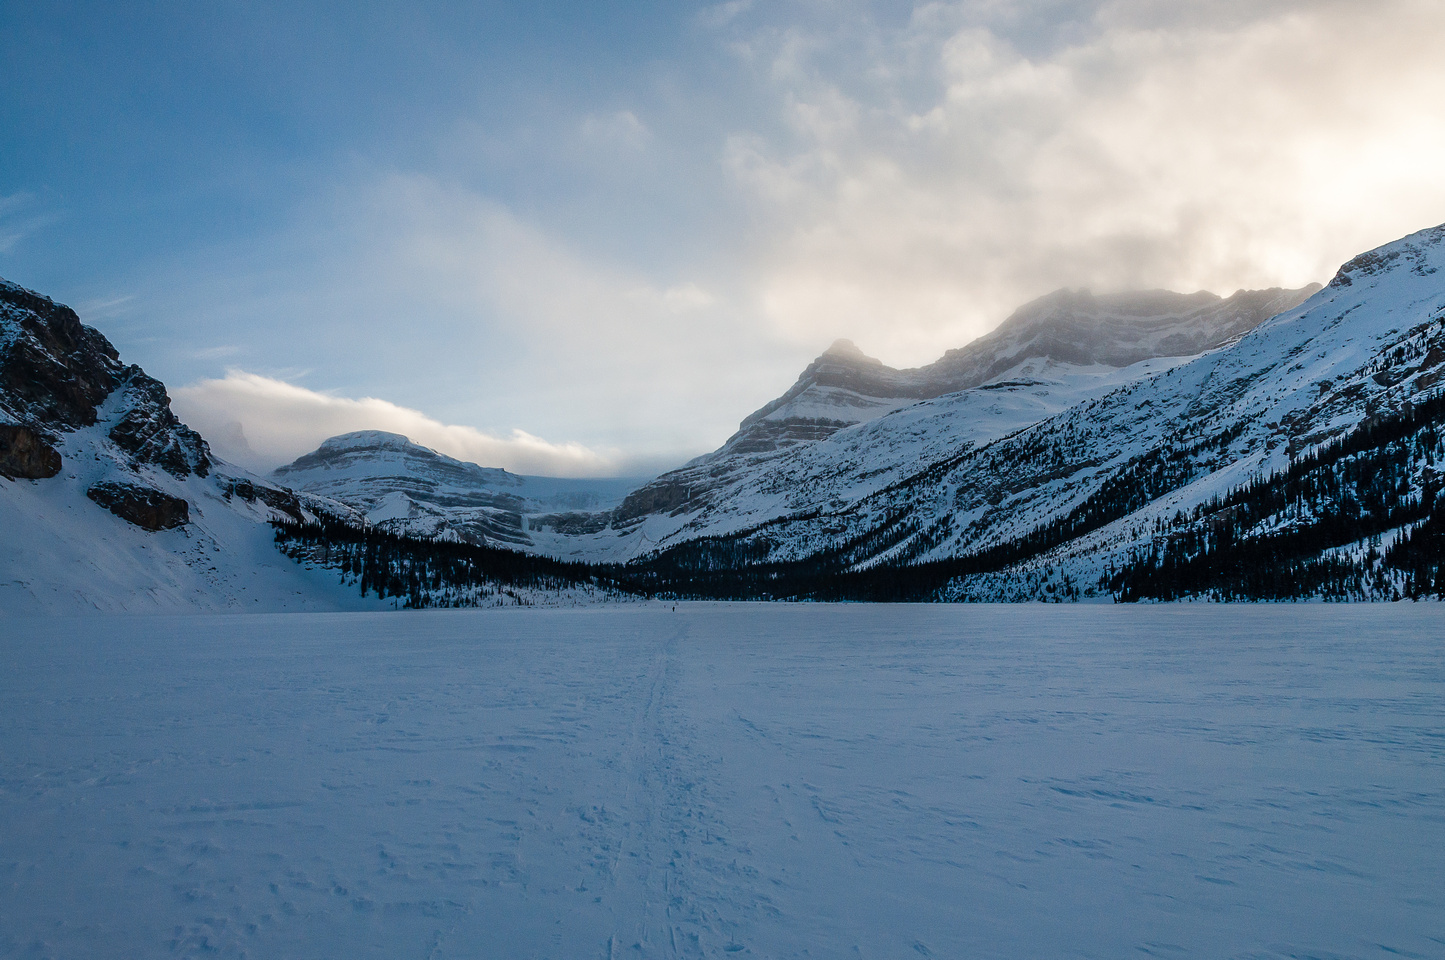 Looking back at Portal and Thompson in fading light as we cross the Bow Lake at dusk.